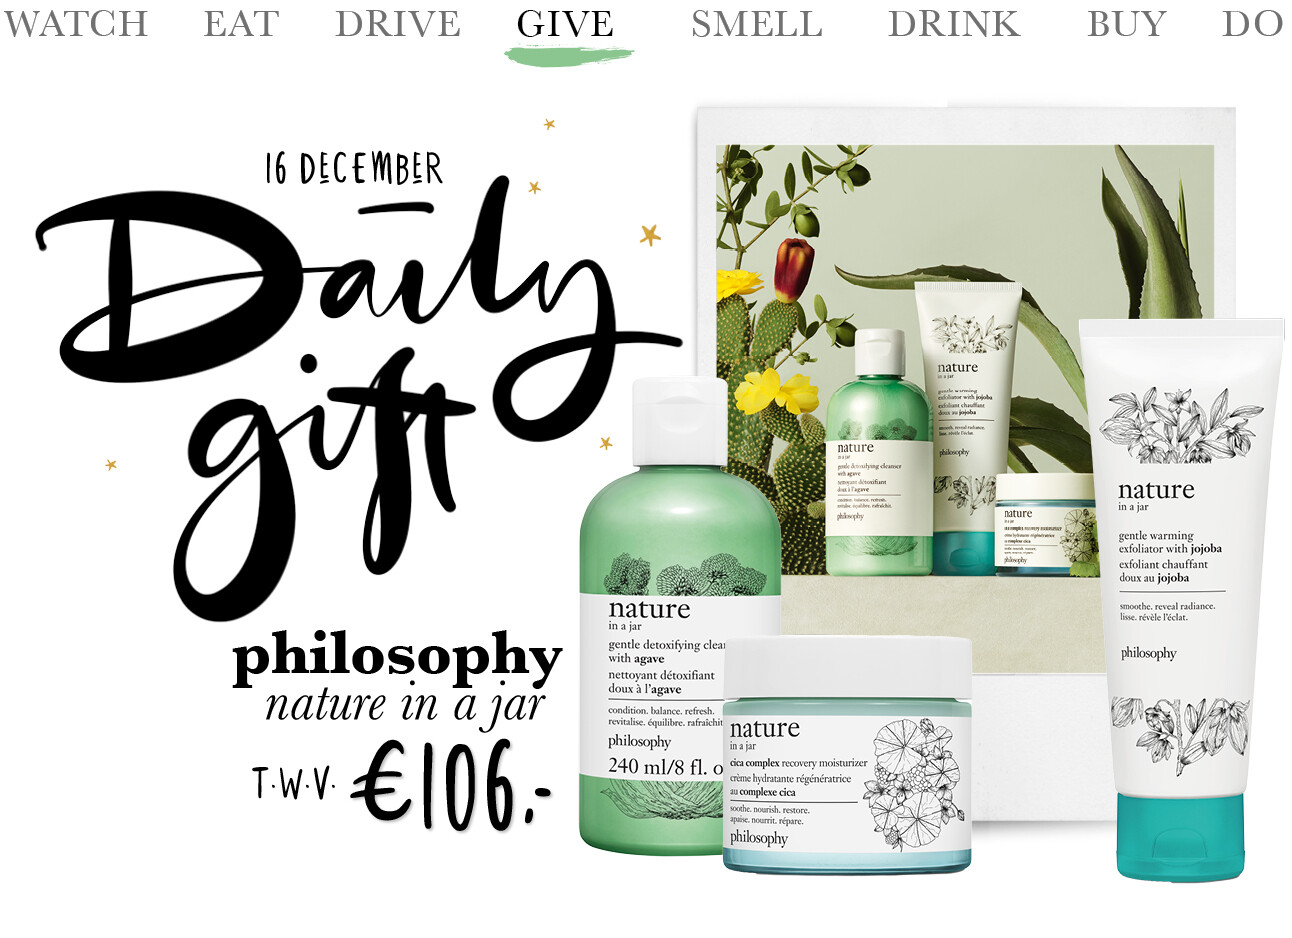 Today we give: een philosophy nature in a Jar